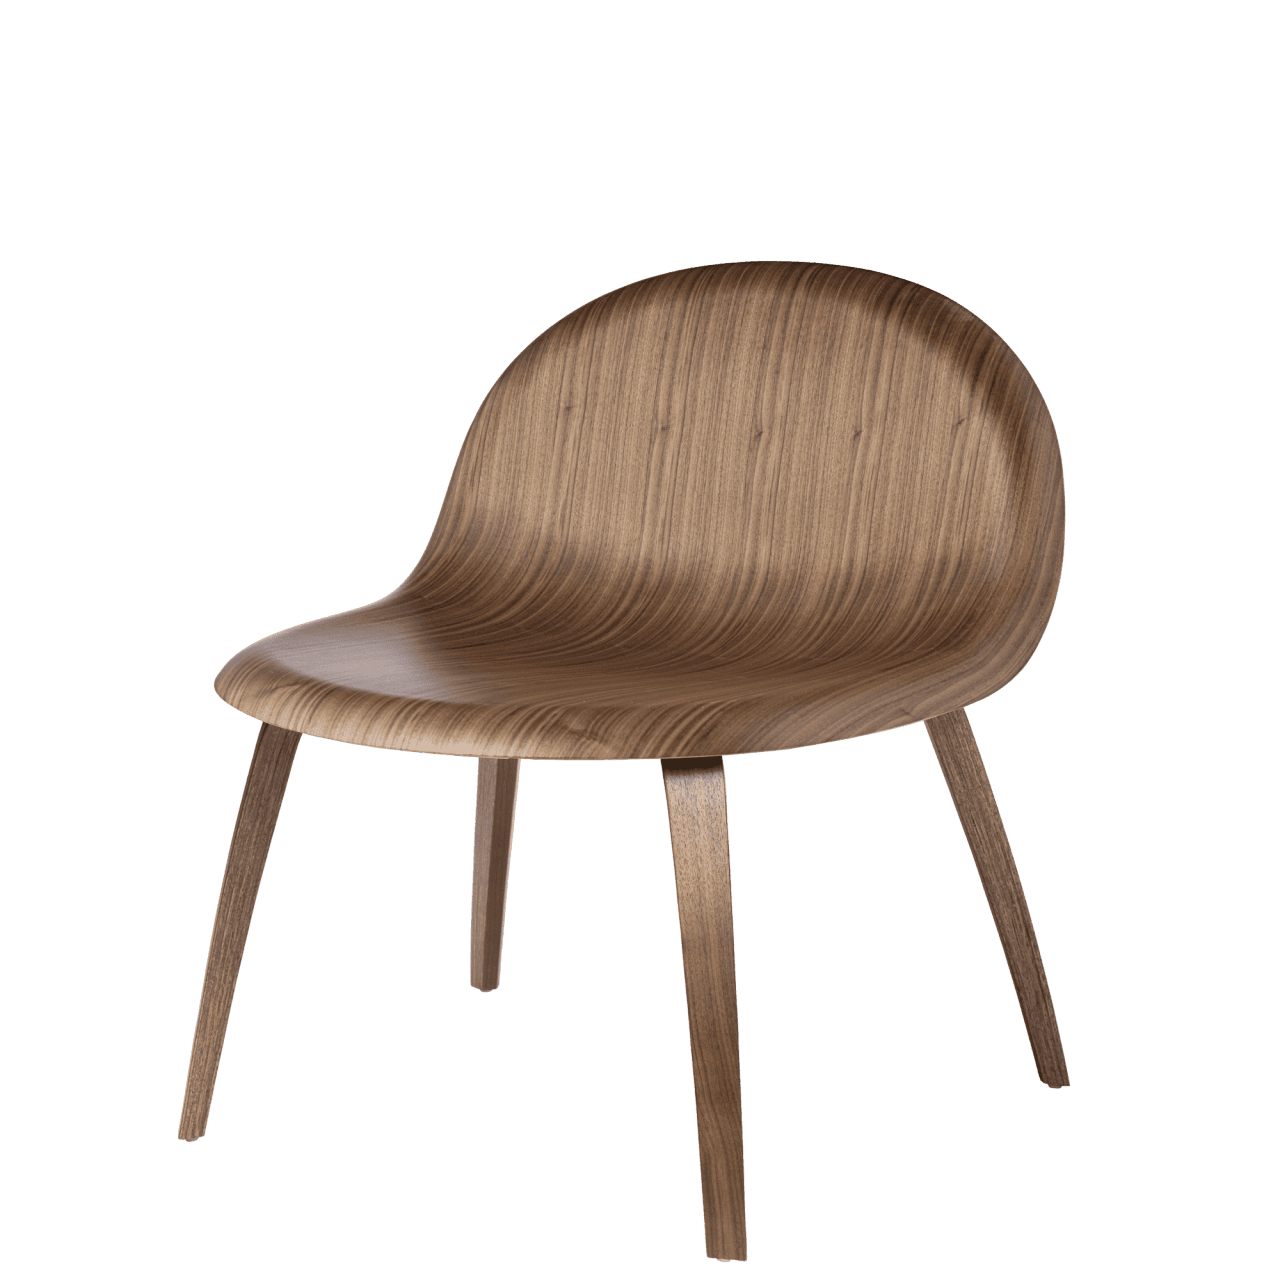 3D Lounge Chair Vierbeingestell